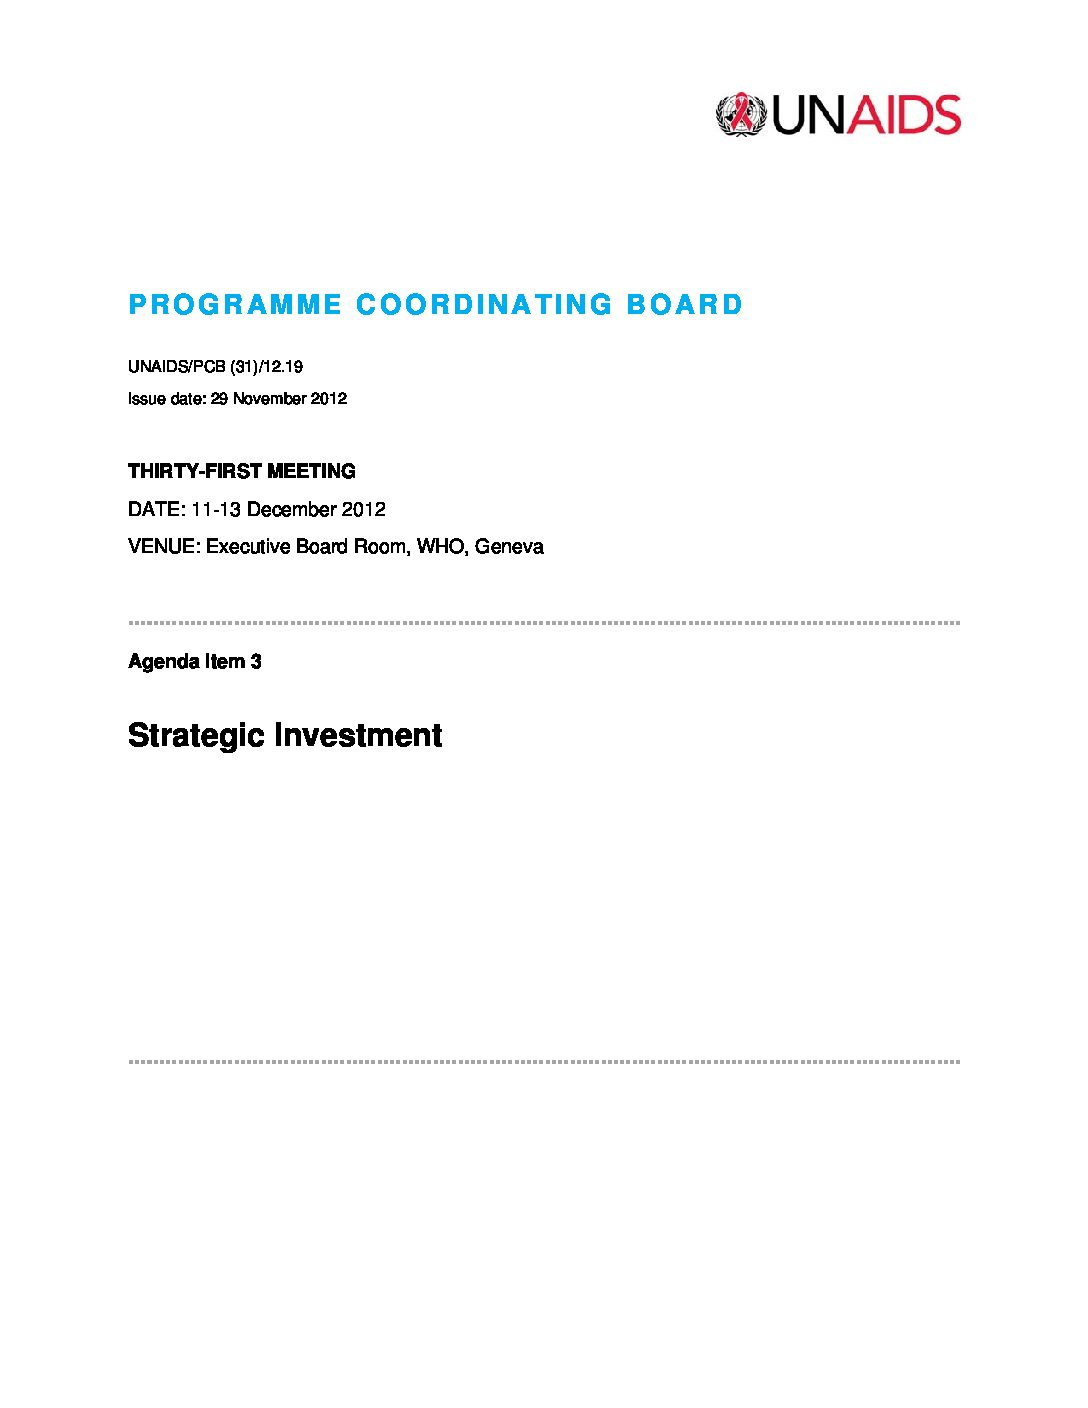 UNAIDS. Strategic investment.